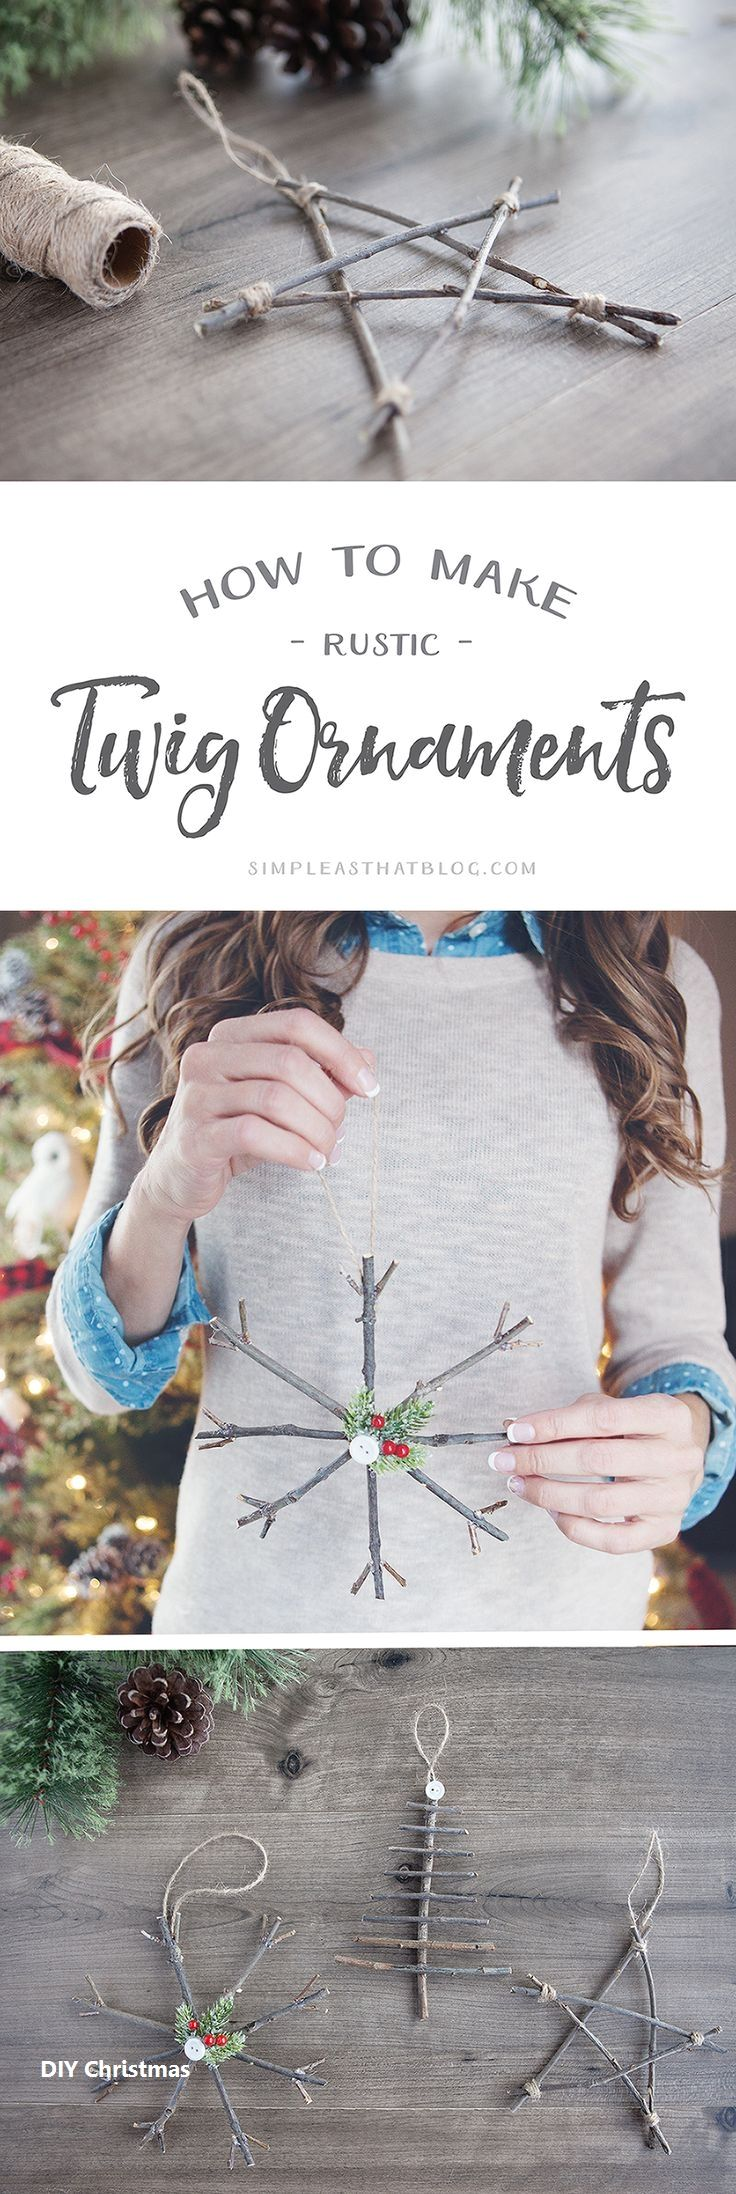 New DIY Christmas 2019 Trends #diychristmas